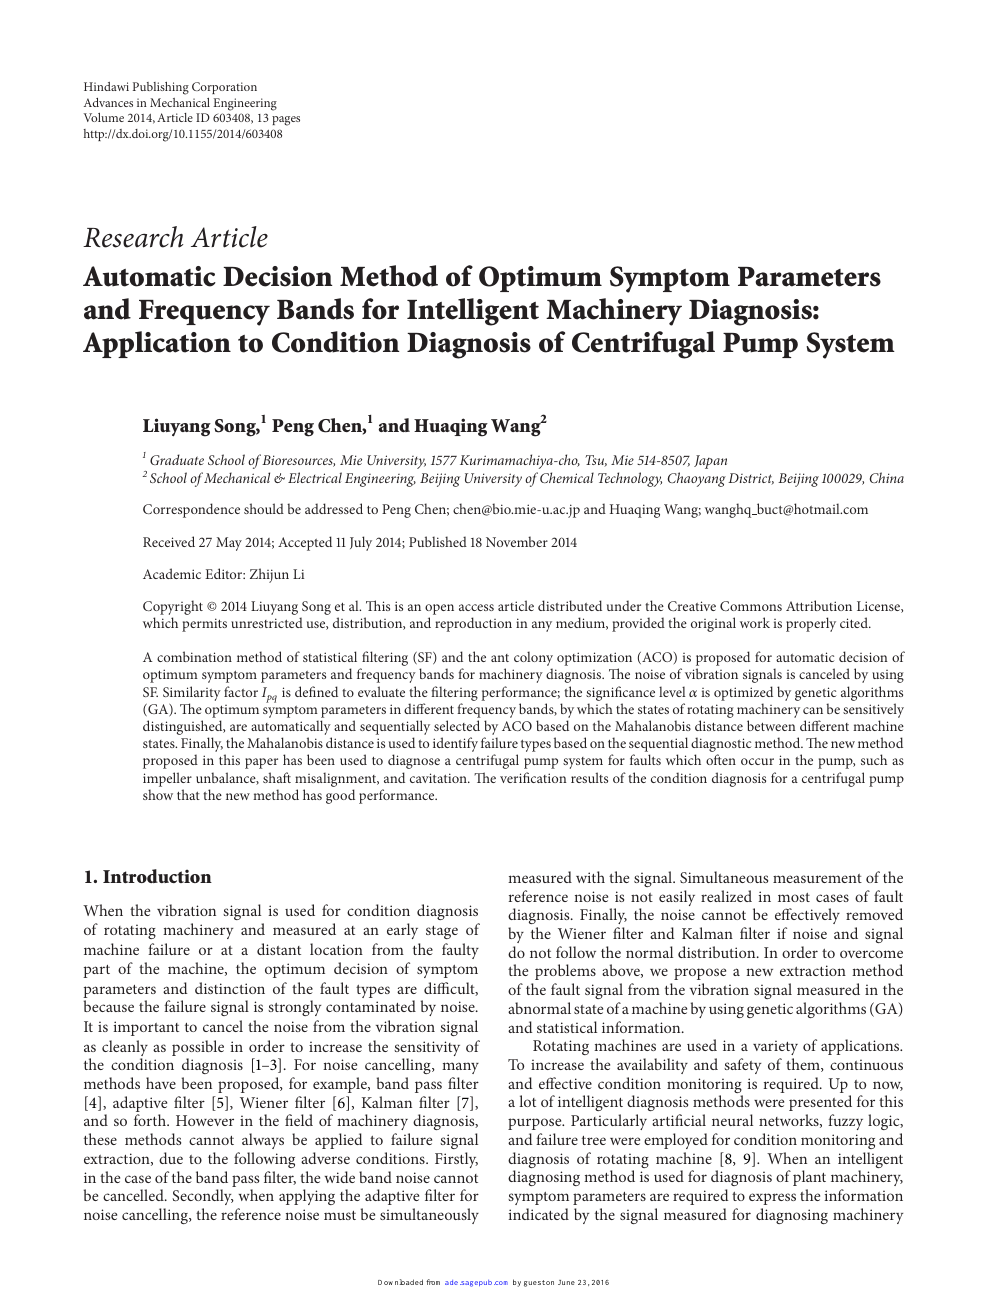 Automatic Decision Method of Optimum Symptom Parameters and